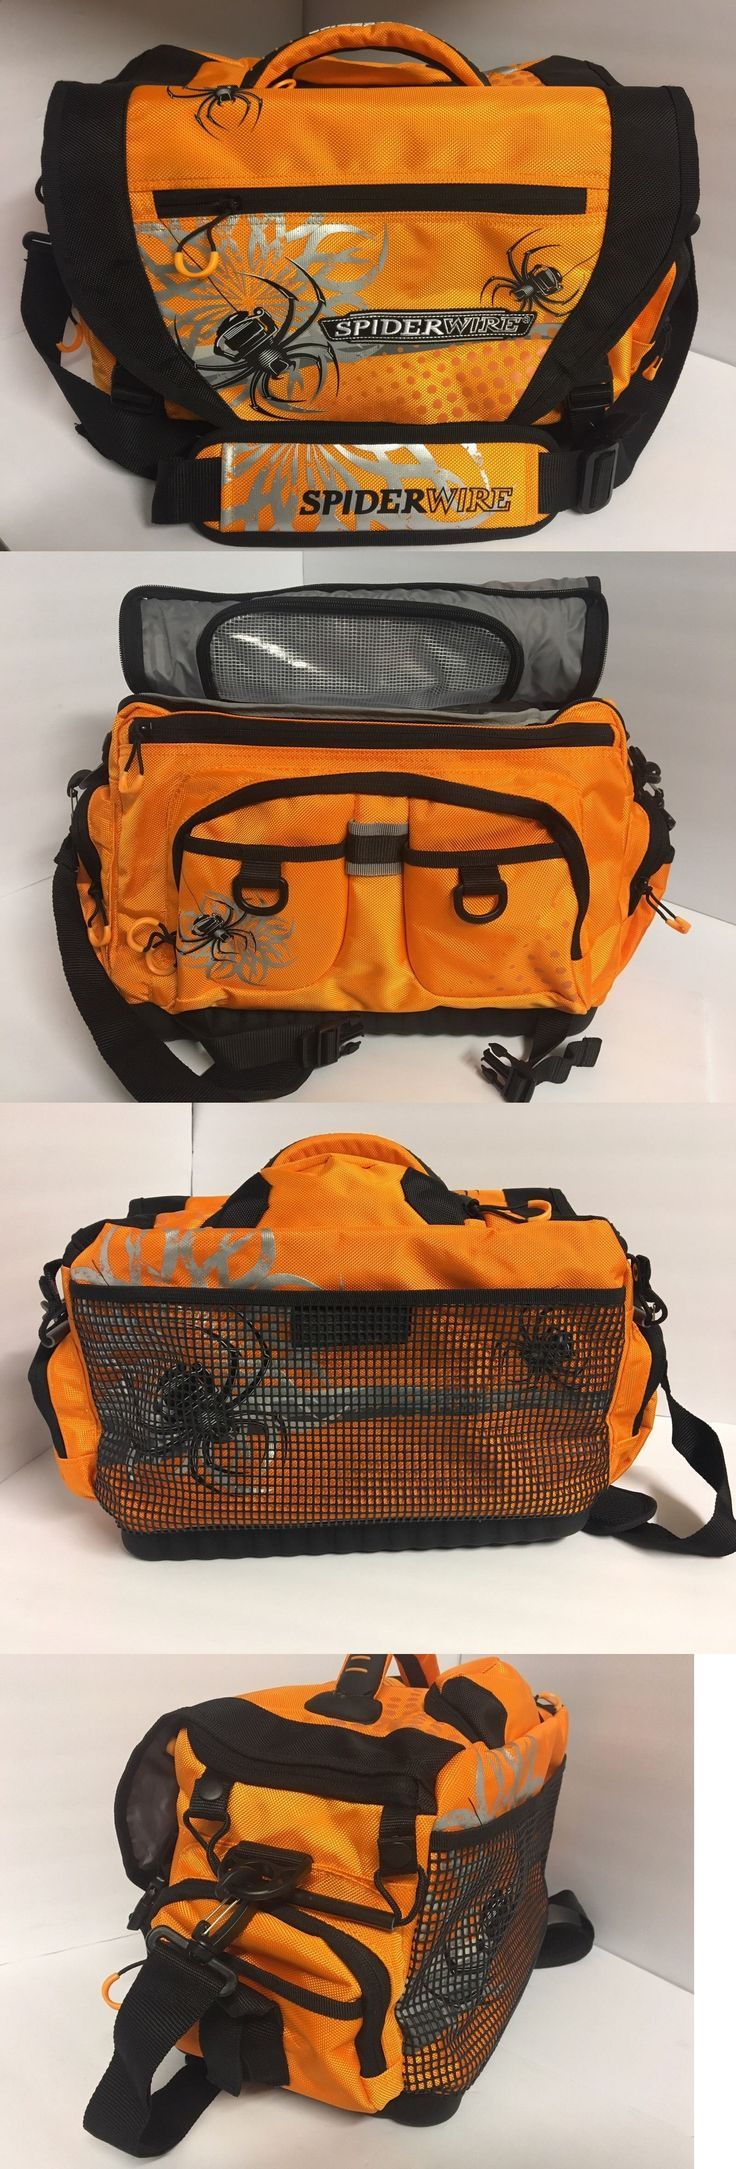 Fishing tackle craft supplies - Tackle Boxes And Bags 22696 Large Spiderwire Orange Fishing Tackle Bag Buy It